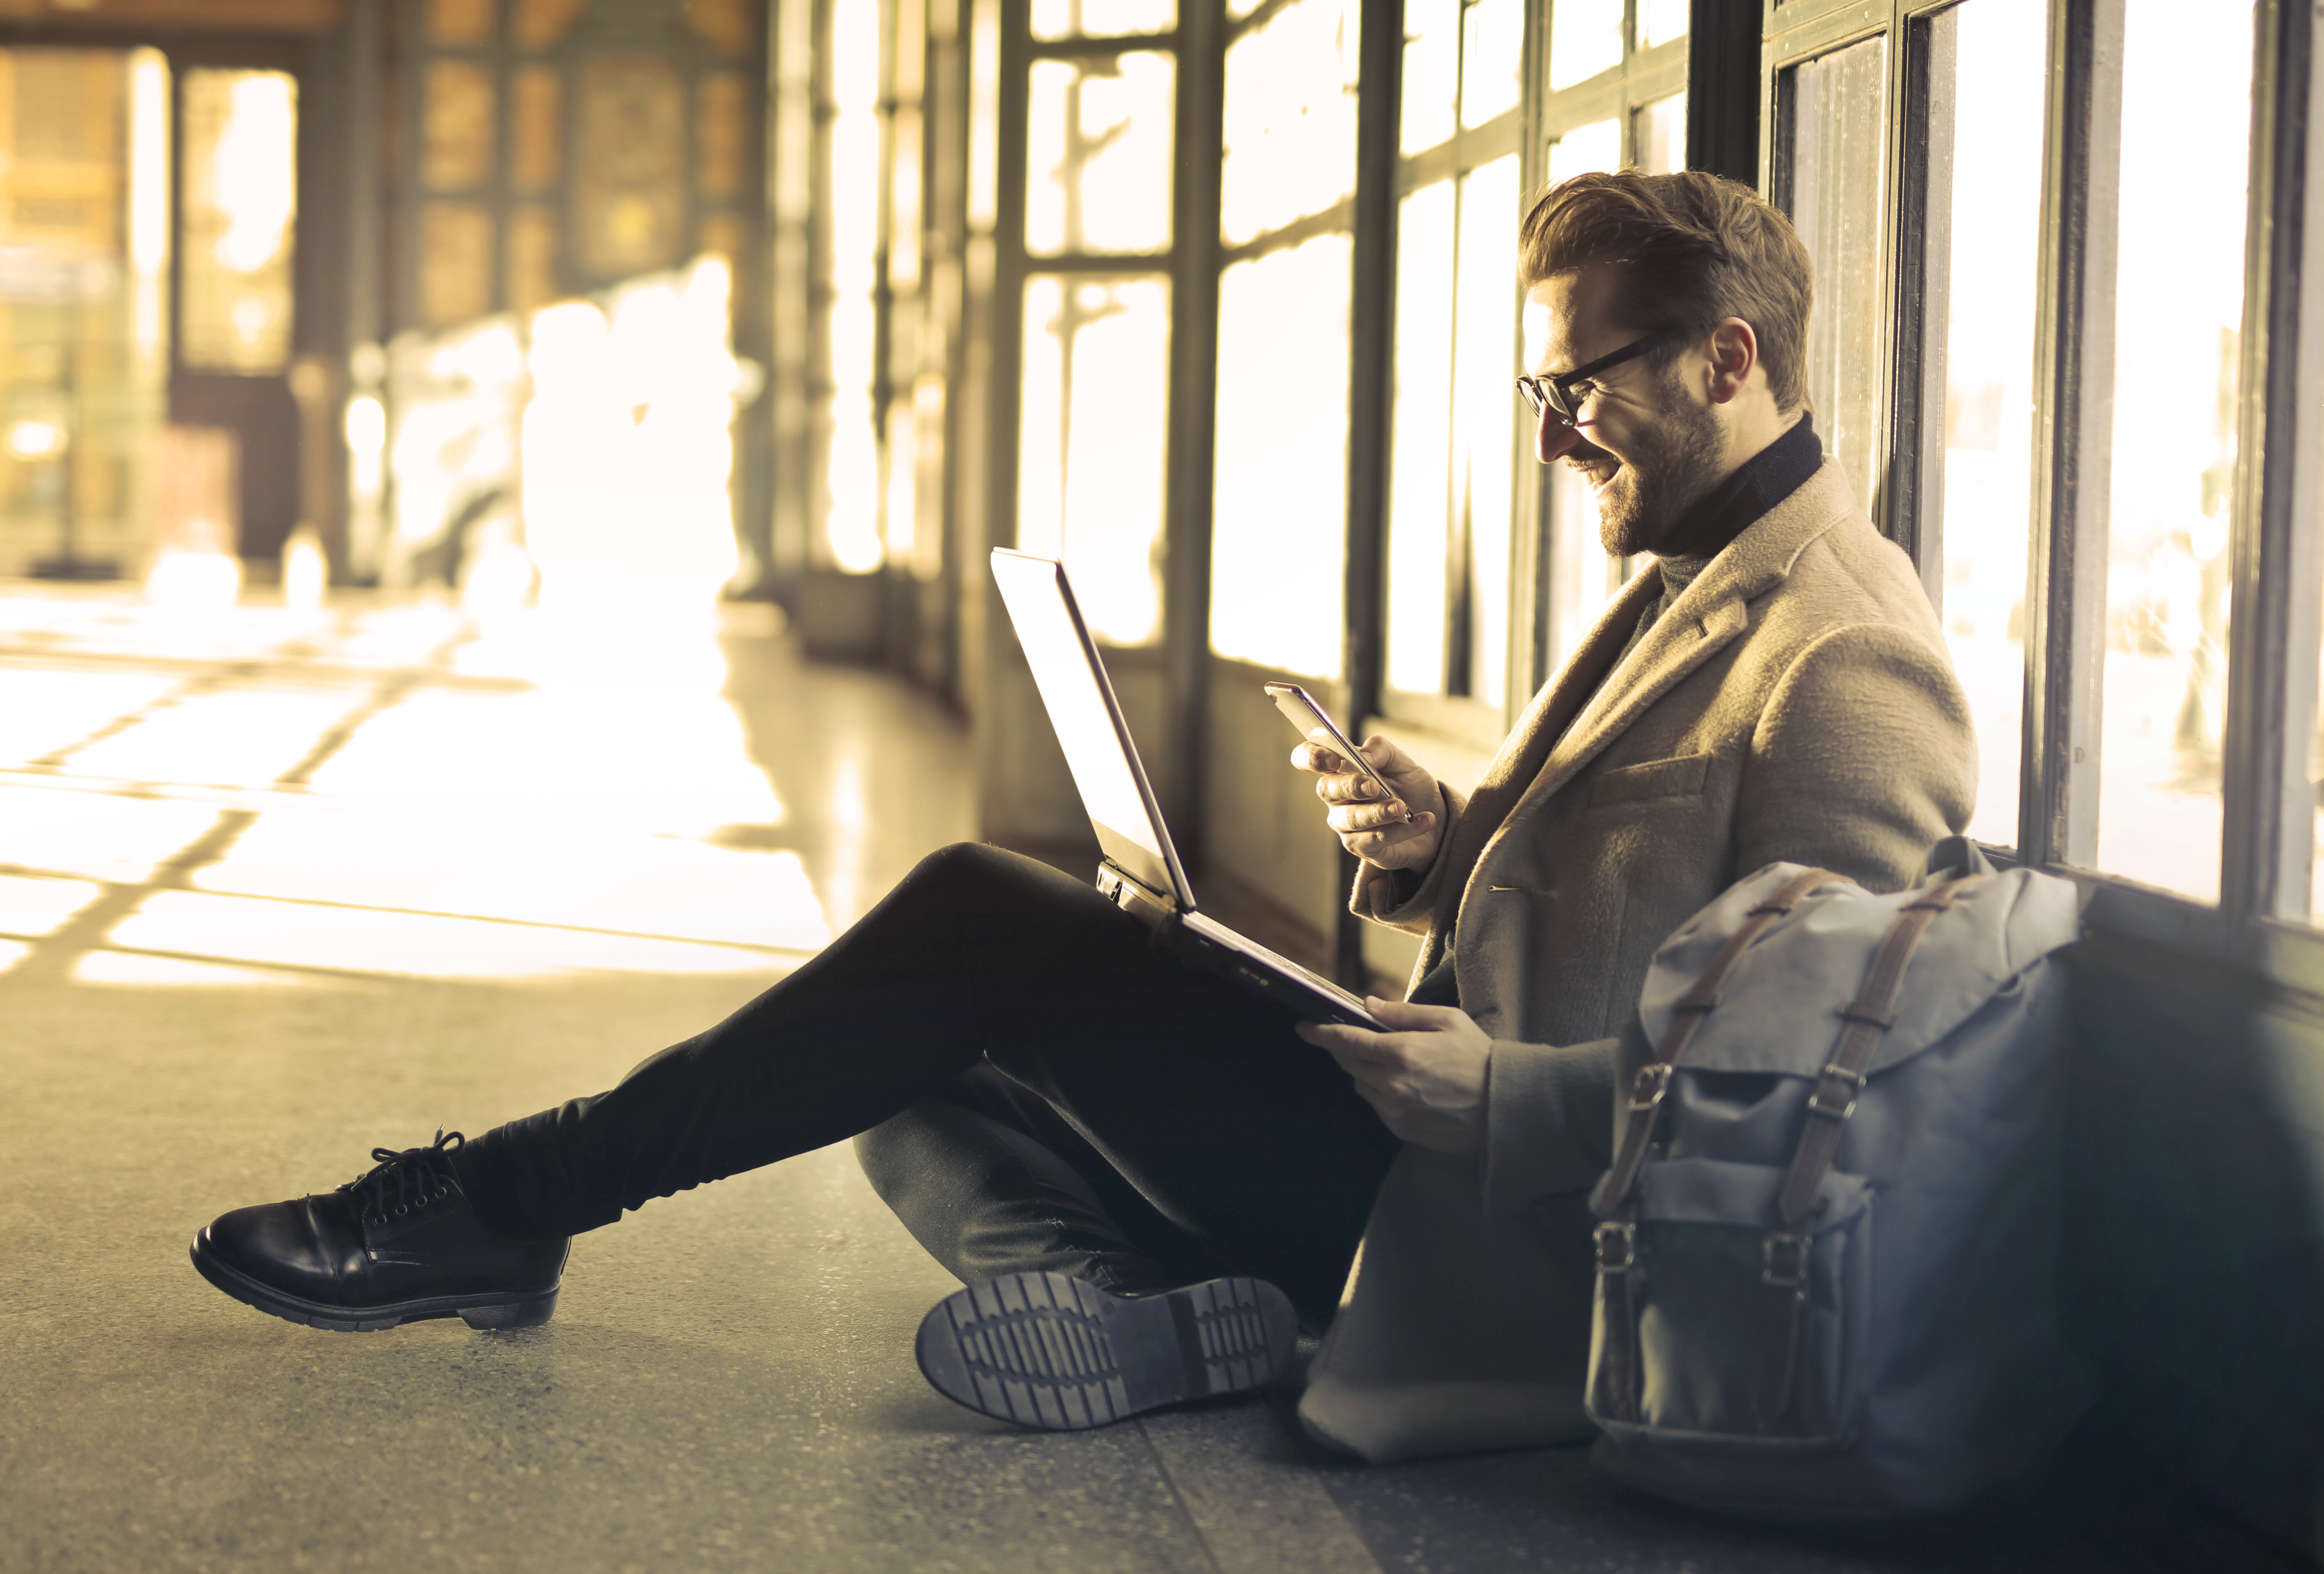 Good looking guy sitting on floor using phone and laptop